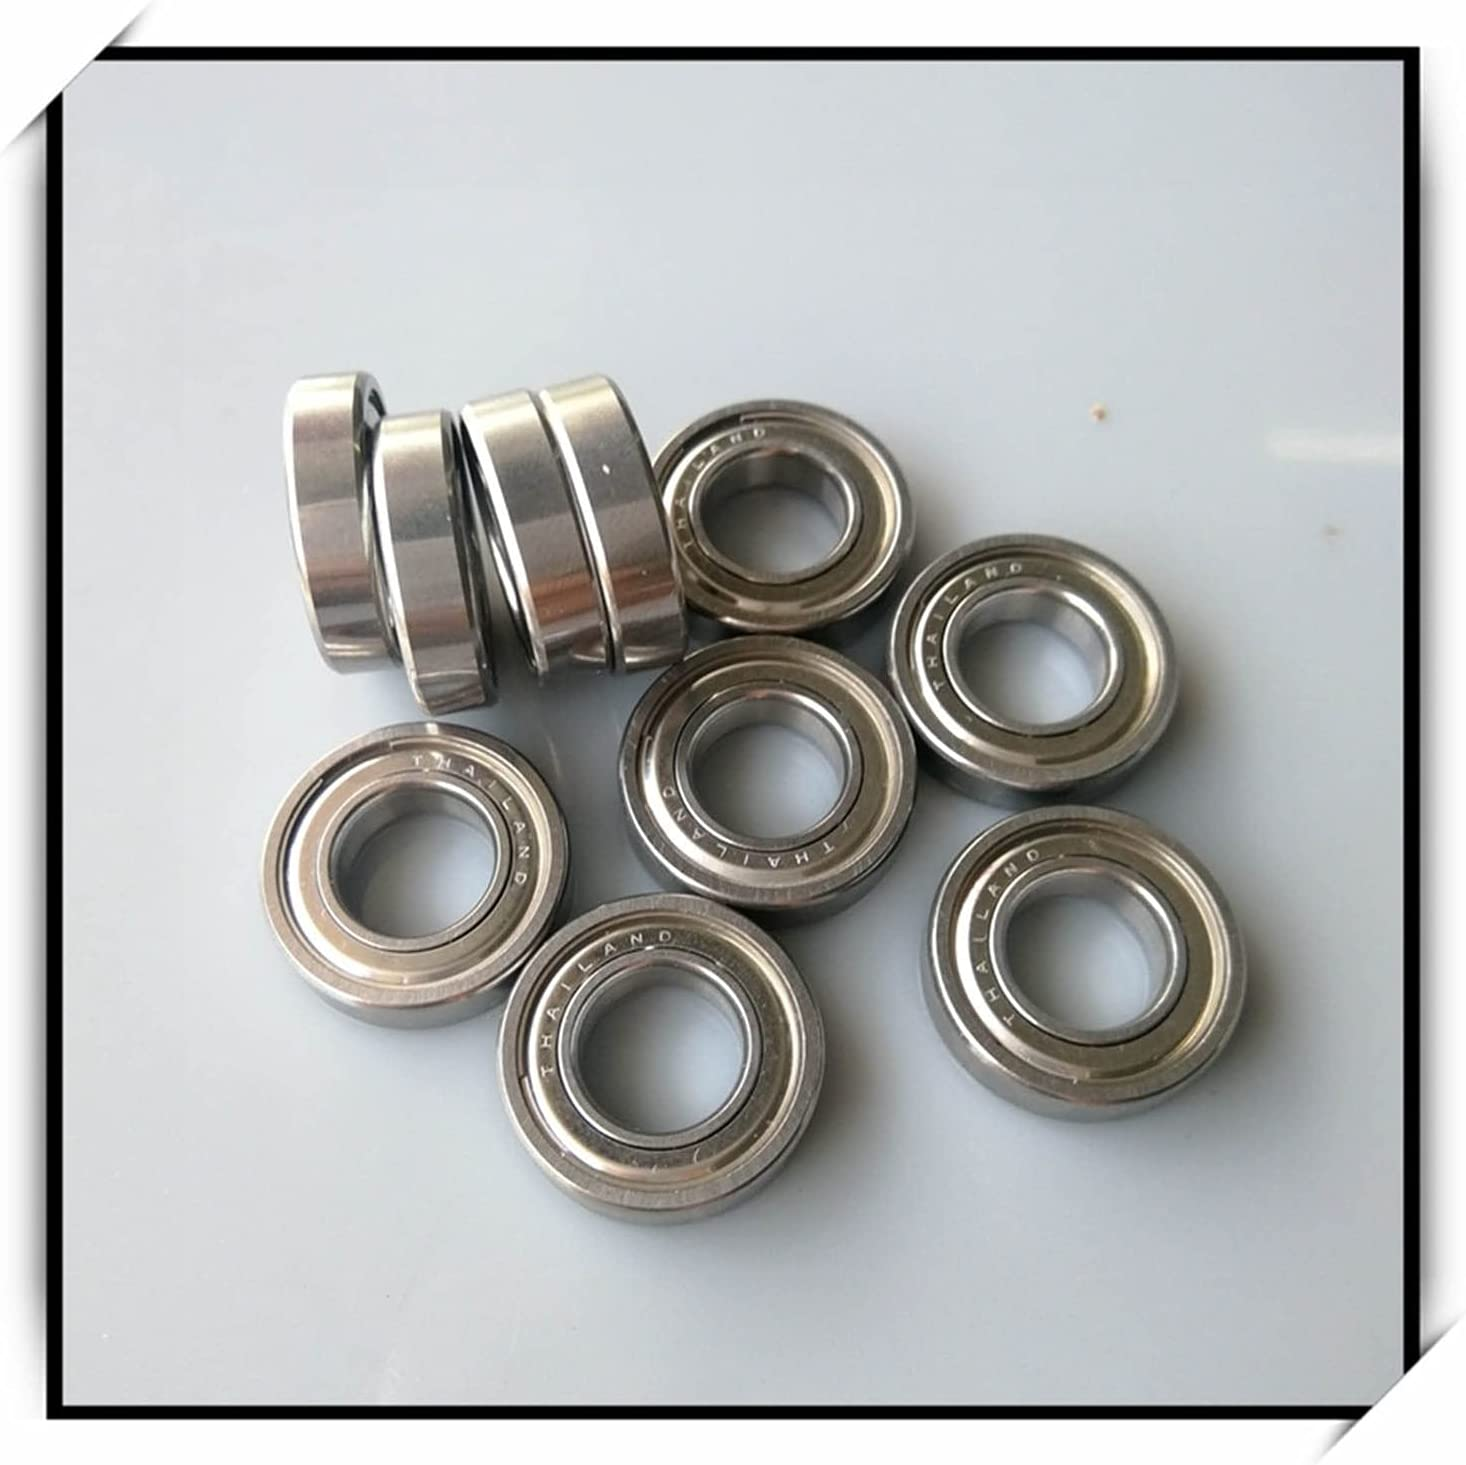 MING-BIN Bearing Tool Popular Accessories 10Pcs Ball Now on sale Bea Steel Stainless